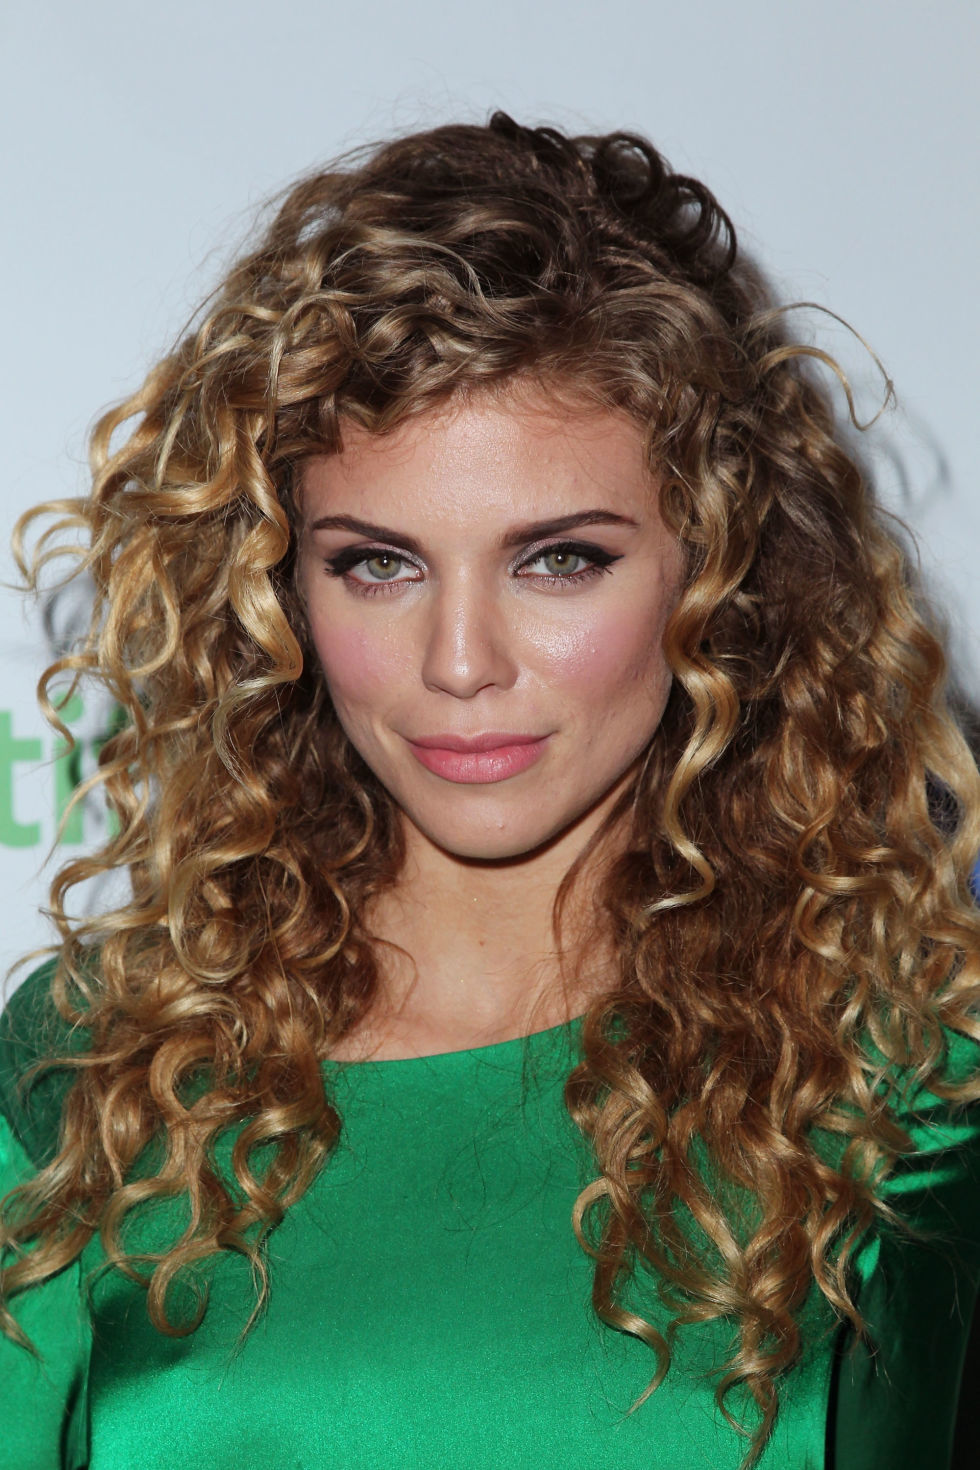 haircut ideas for curly hair 2 1 - Haircut Ideas for Curly Hair